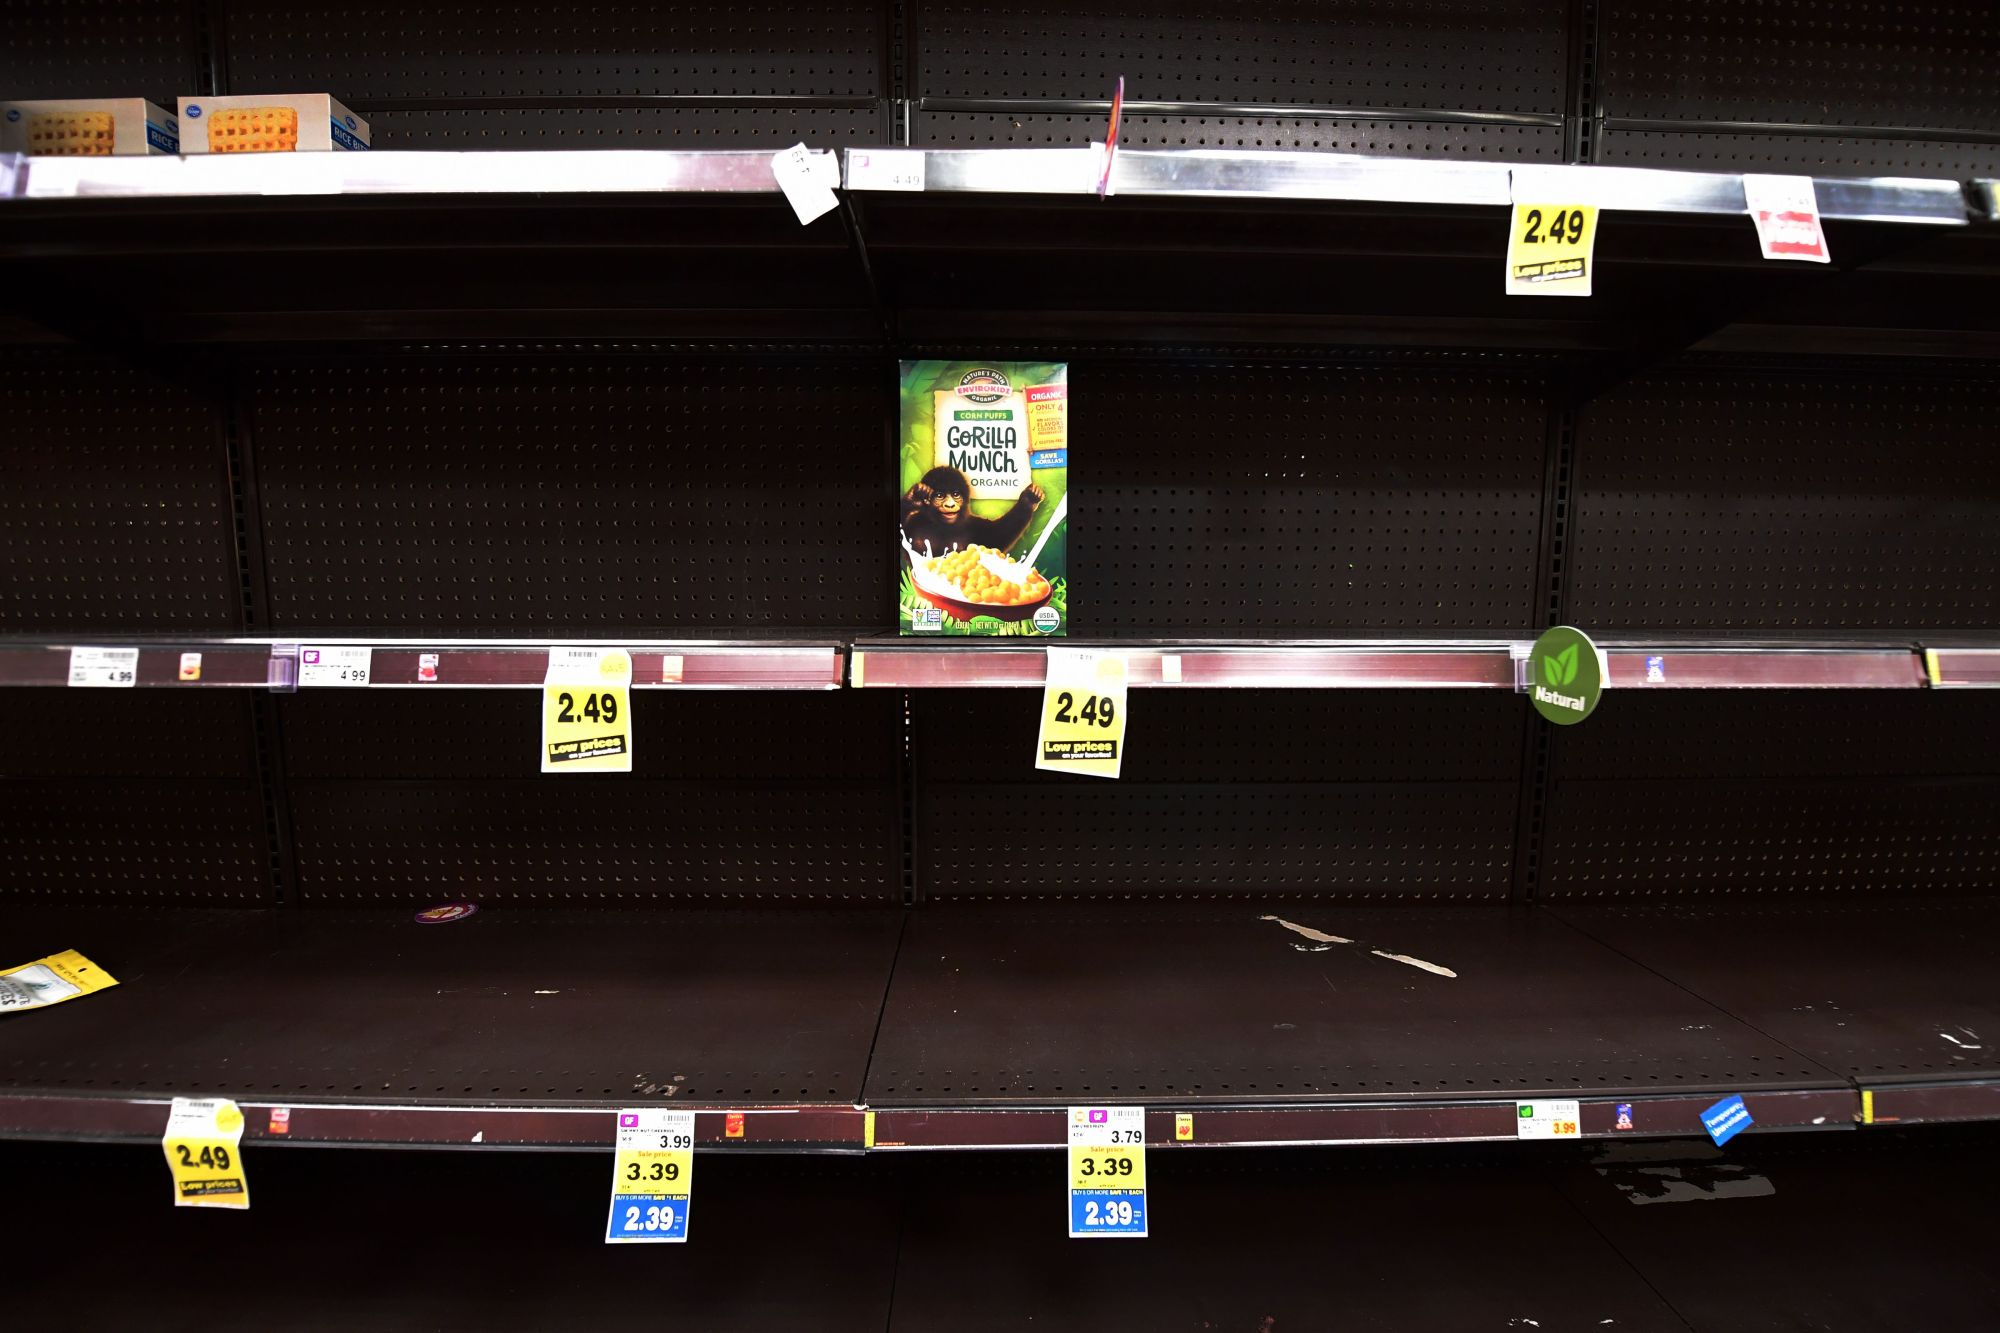 A lone box of breakfast cereal remains on the shelf at a Ralph's Supermarket in North Hollywood on March 19, 2020, as people continue shopping for more food and household products amid the coronavirus epidemic. (Frederic J. BROWN / AFP via Getty Images)